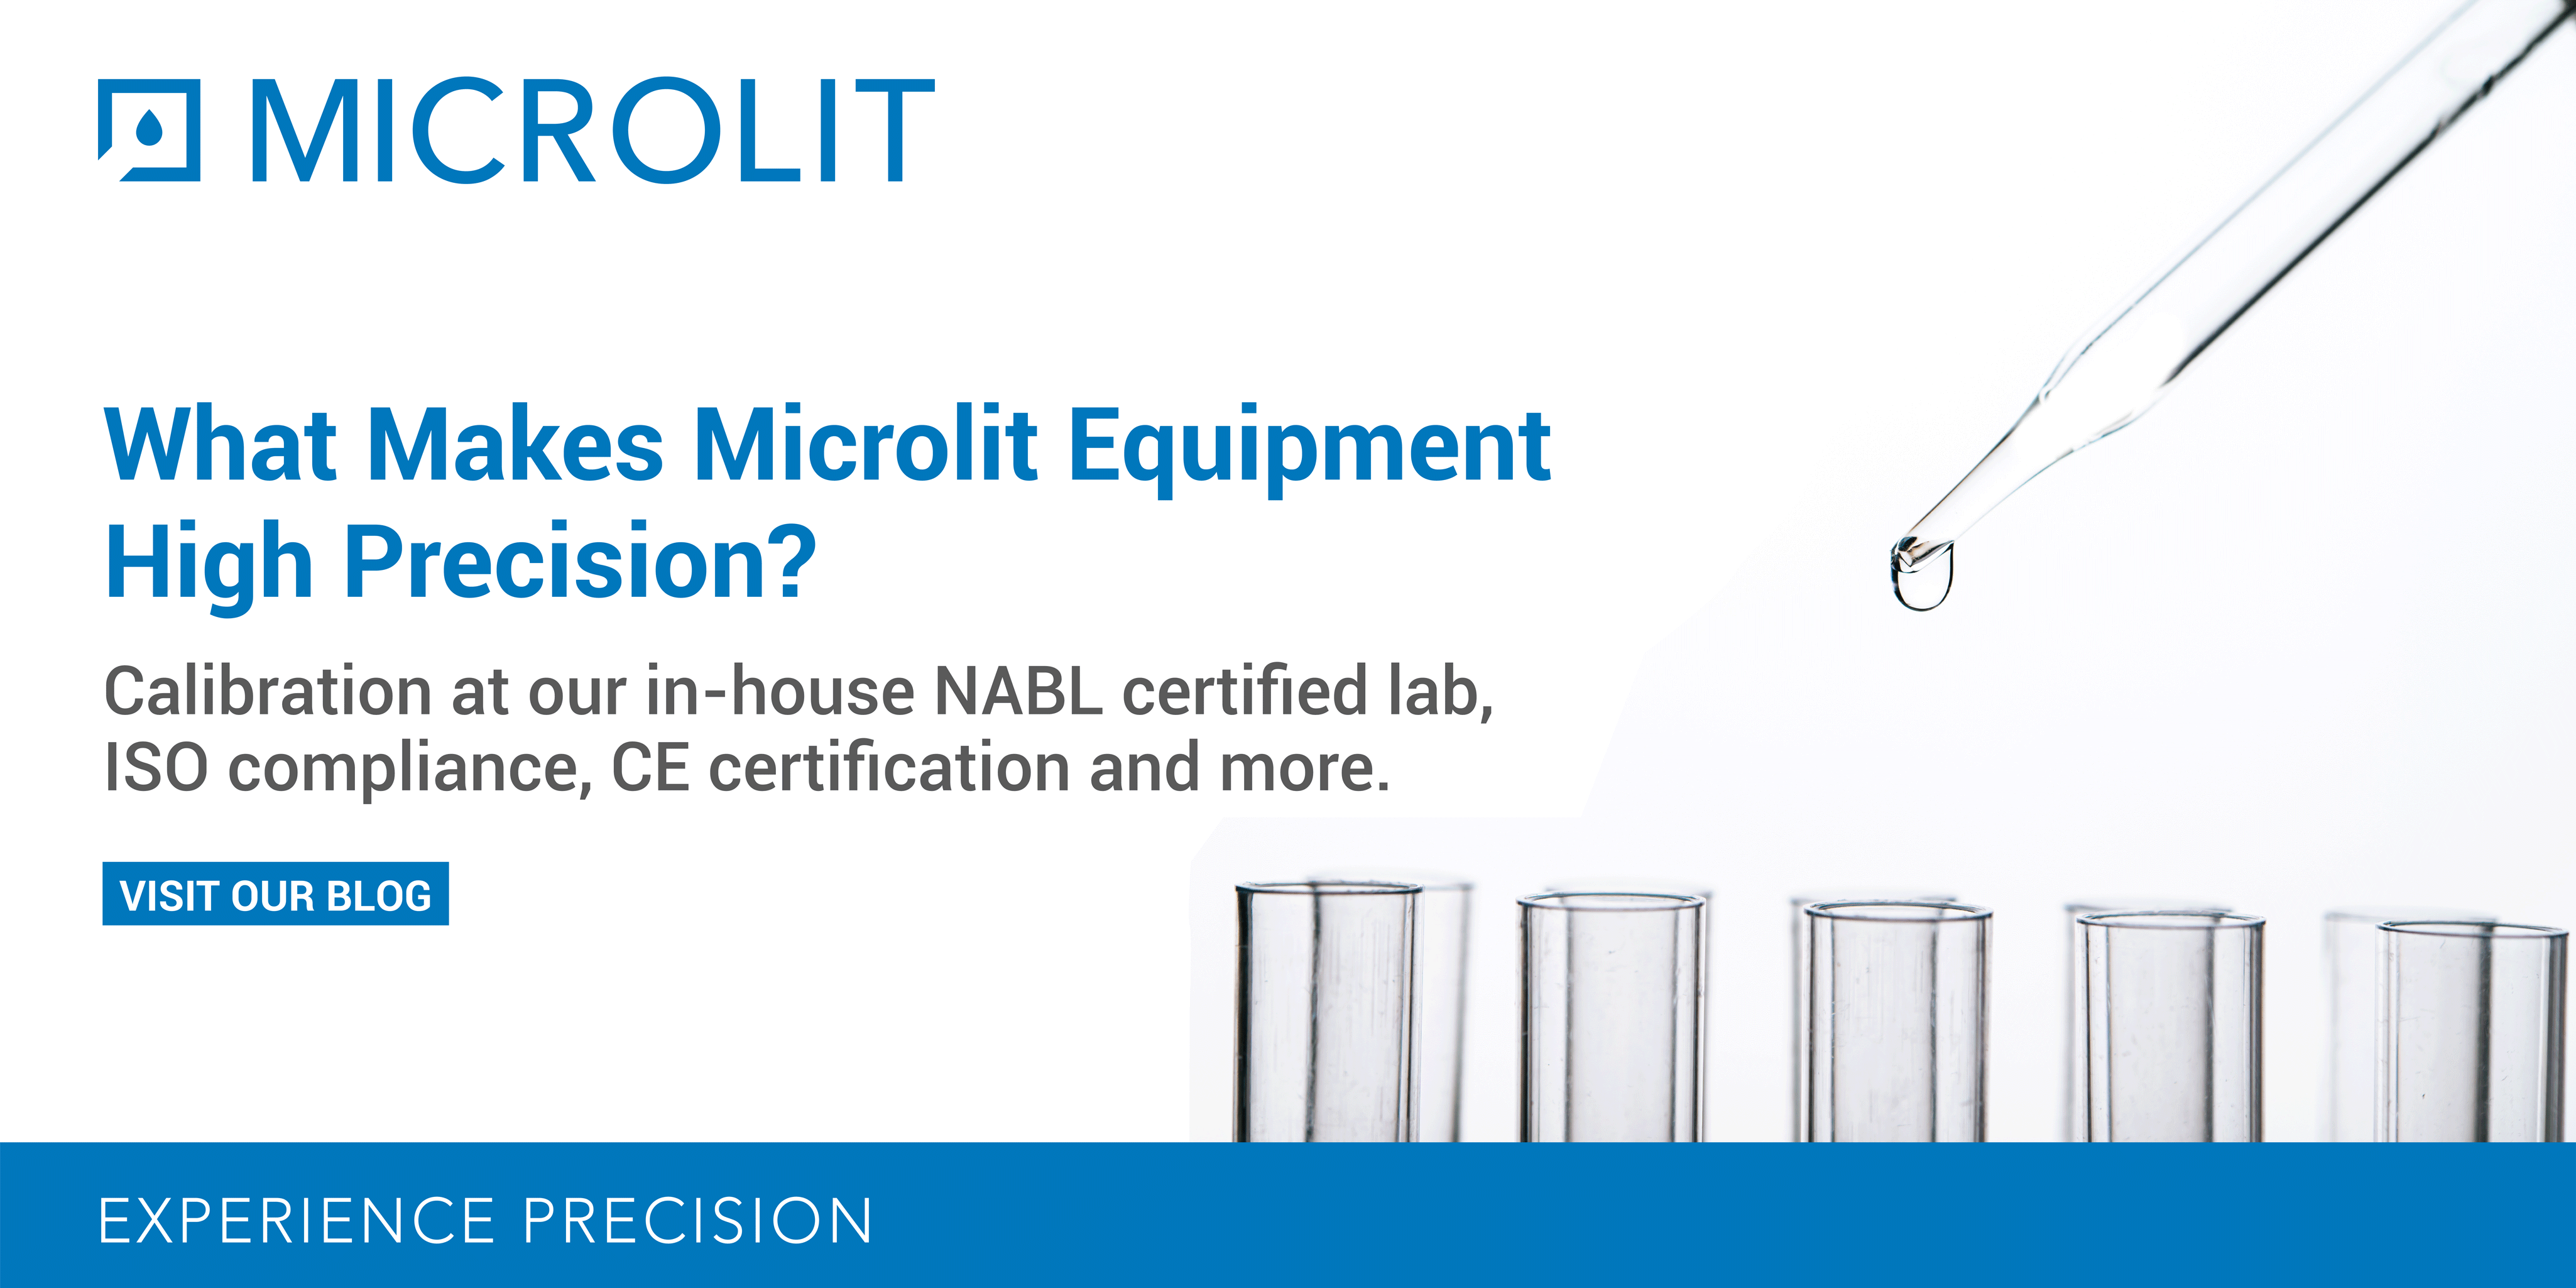 How We Ensure High Levels of Precision in Our Lab Equipment